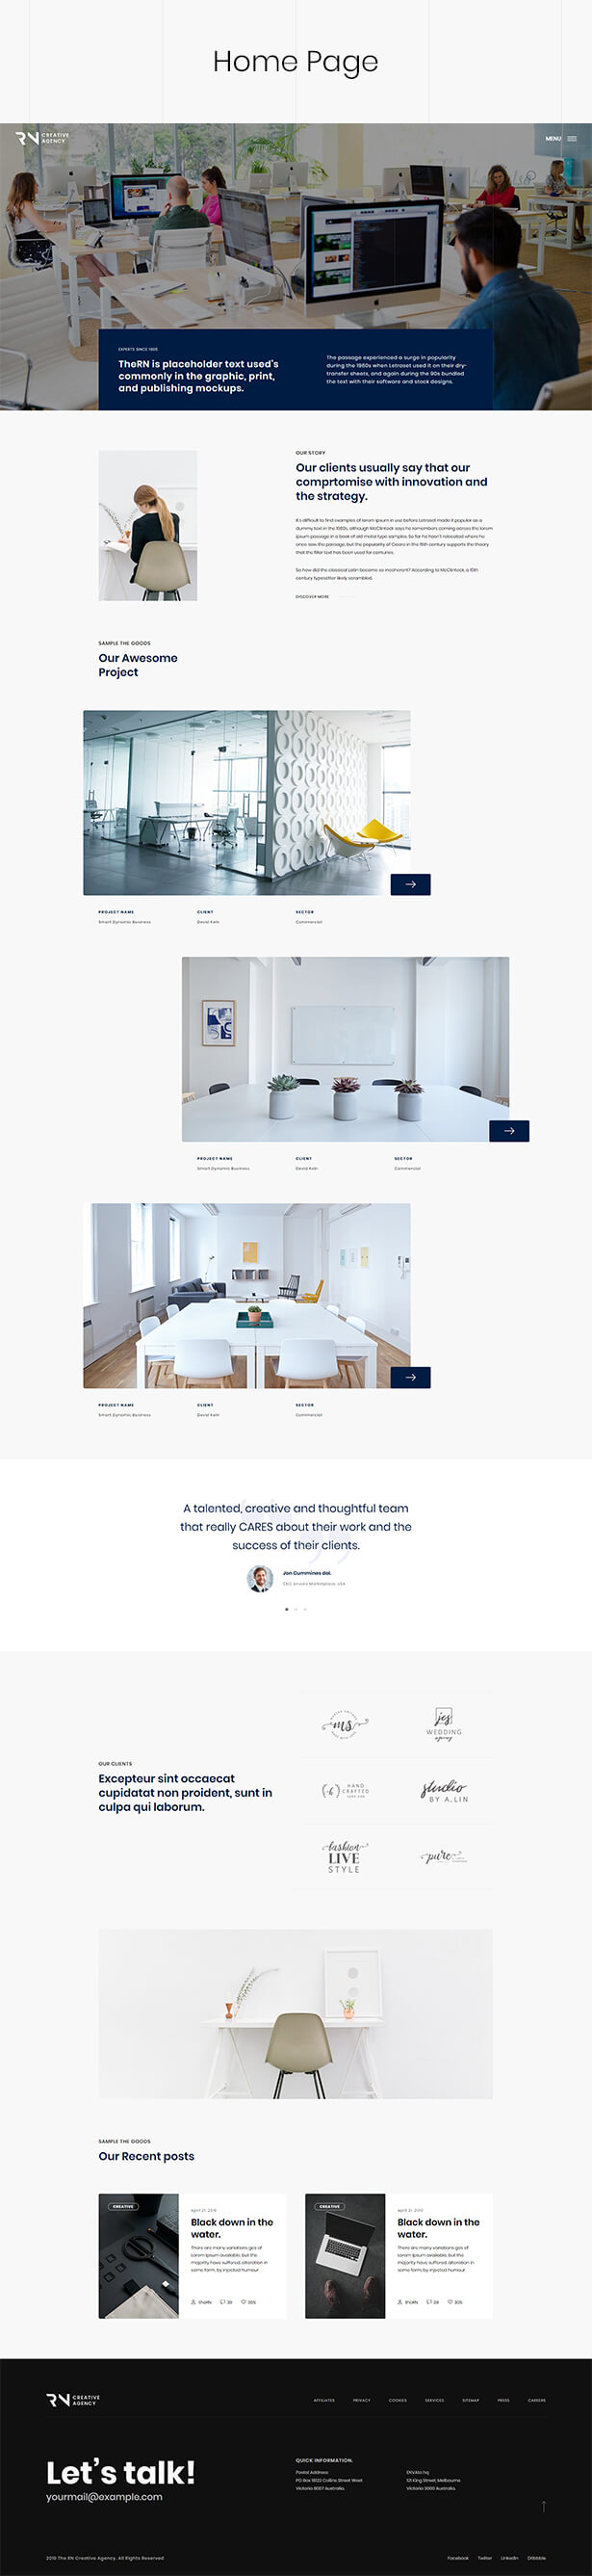 TheRN - Creative Agency React Gatsby Template - 2